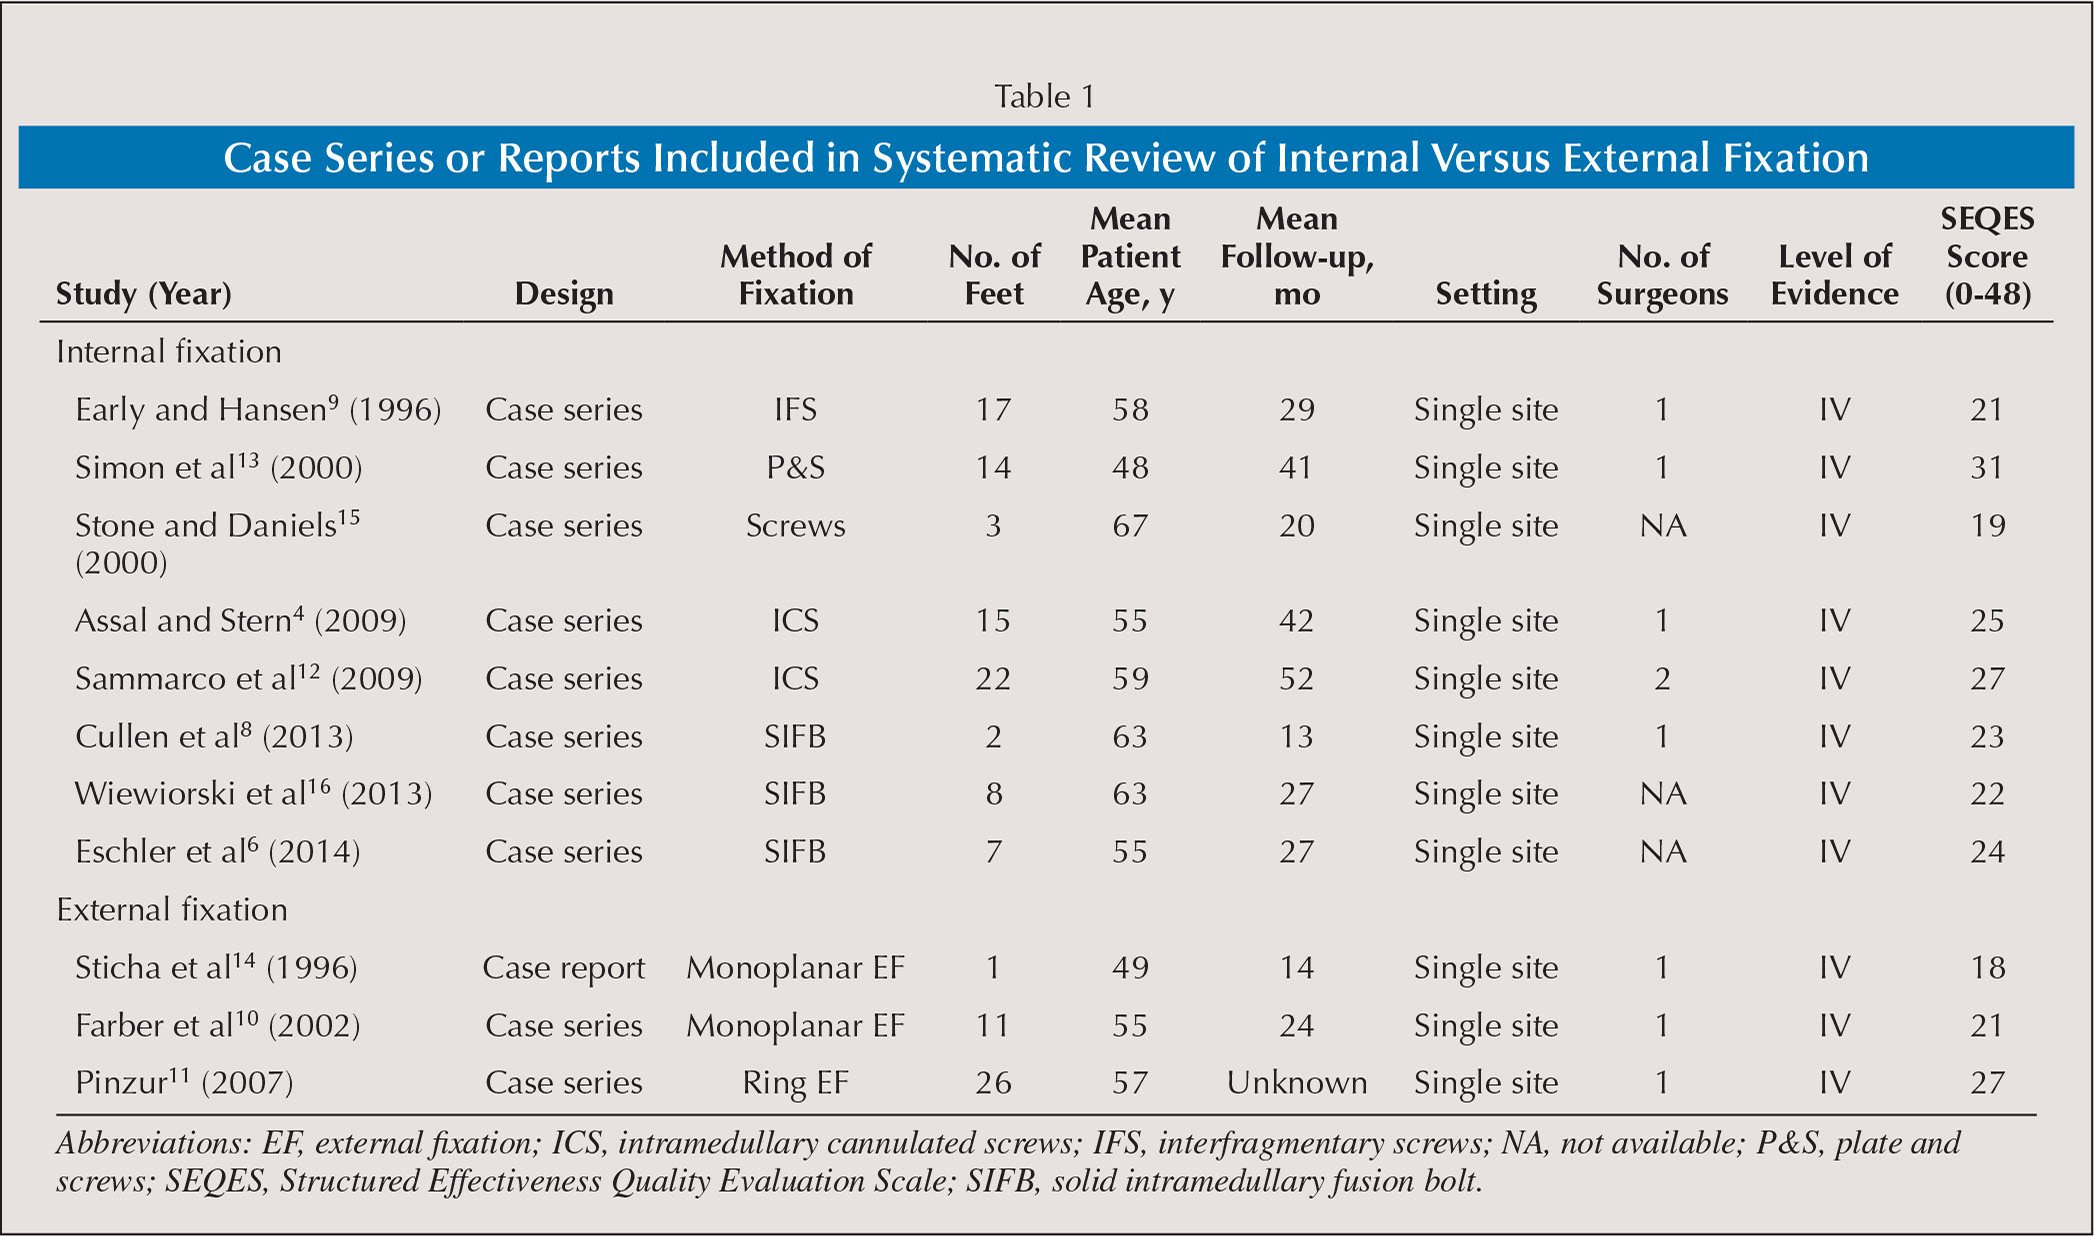 Case Series or Reports Included in Systematic Review of Internal Versus External Fixation